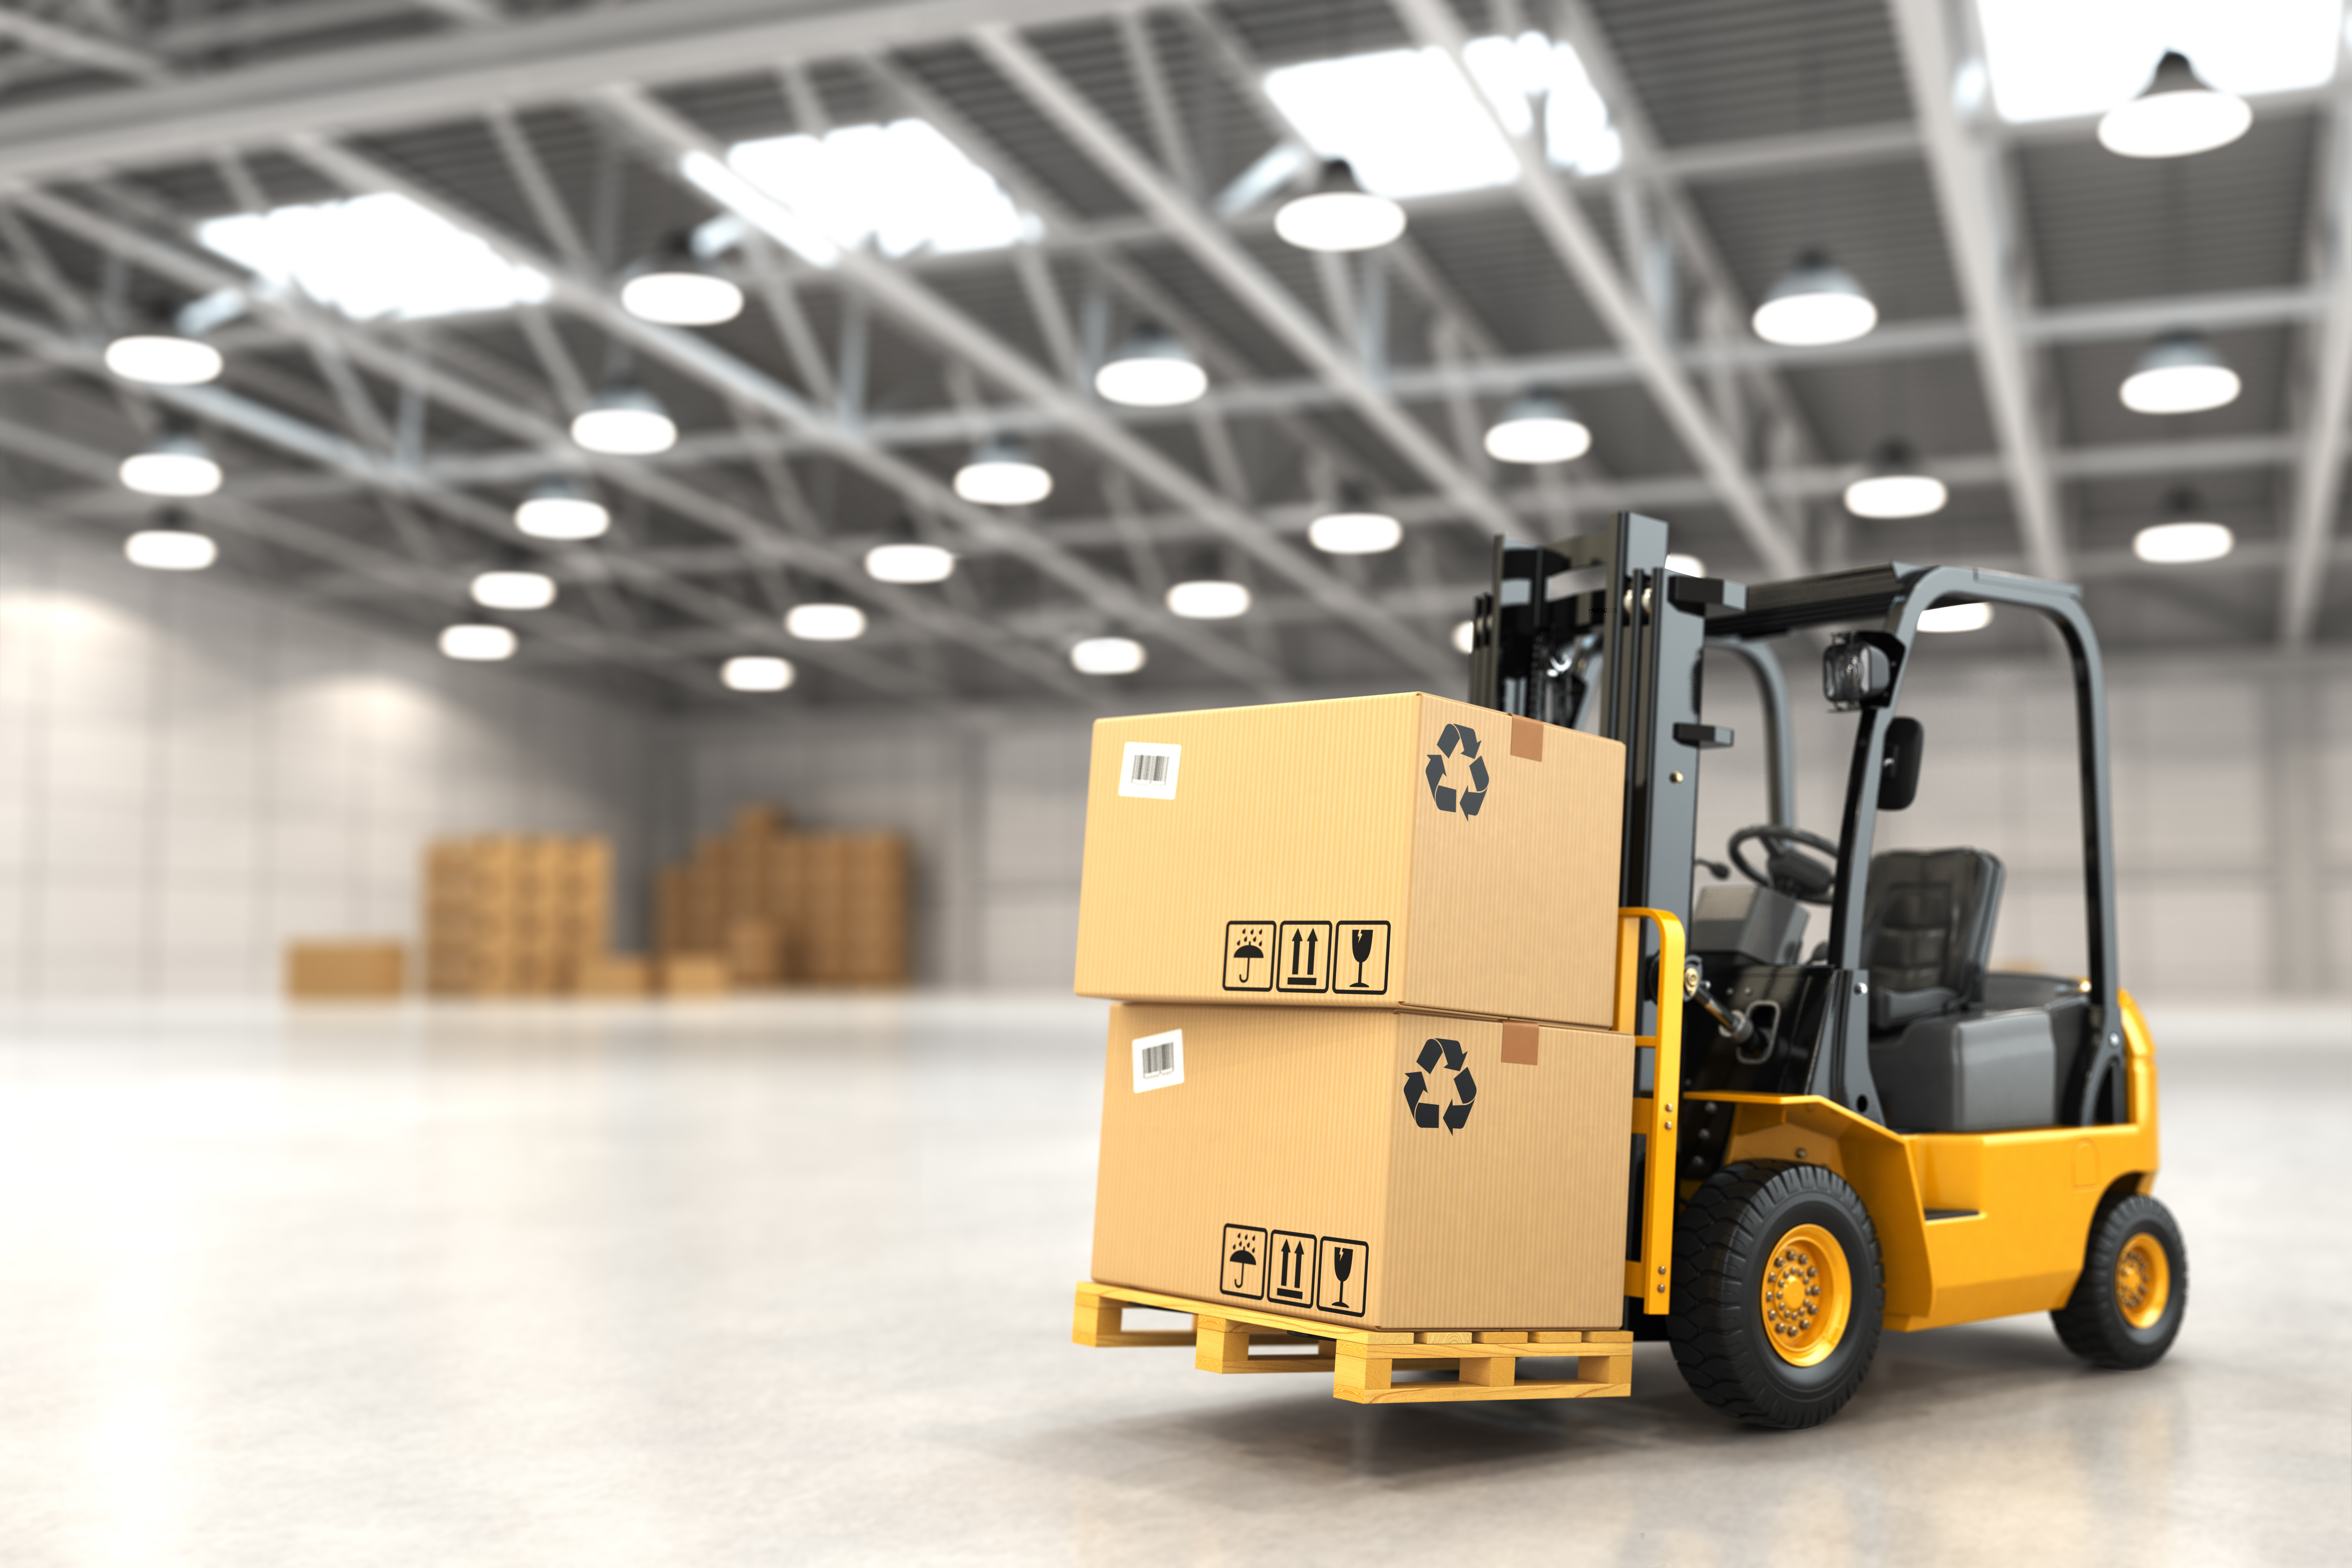 5 most important parts of a forklift certifyme forklift truck in warehouse or storage loading cardboard boxes xflitez Gallery